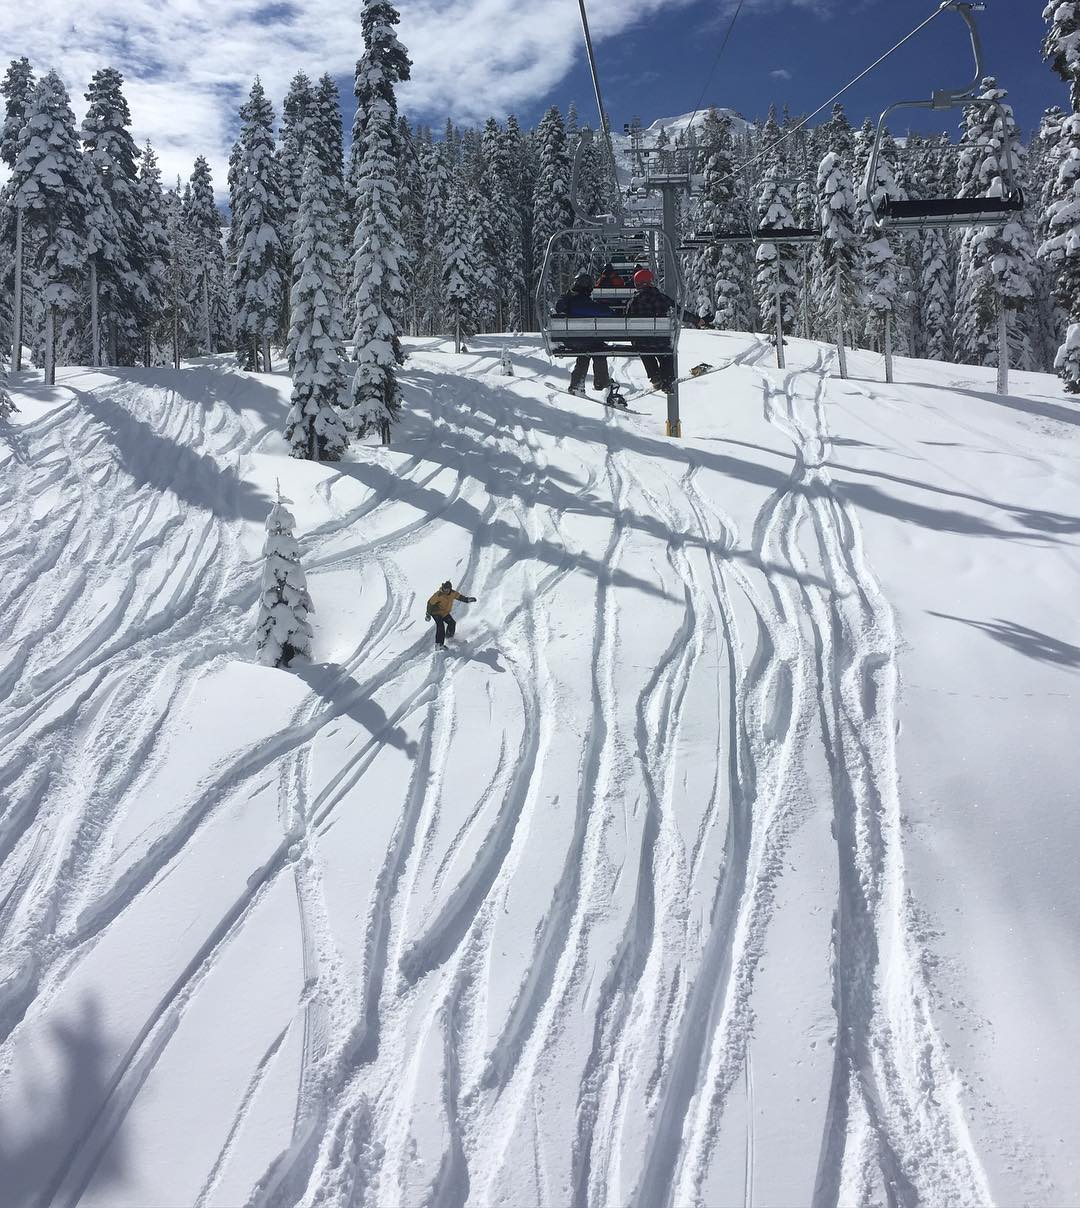 Winter is back in Tahoe!! @sugarbowlresort